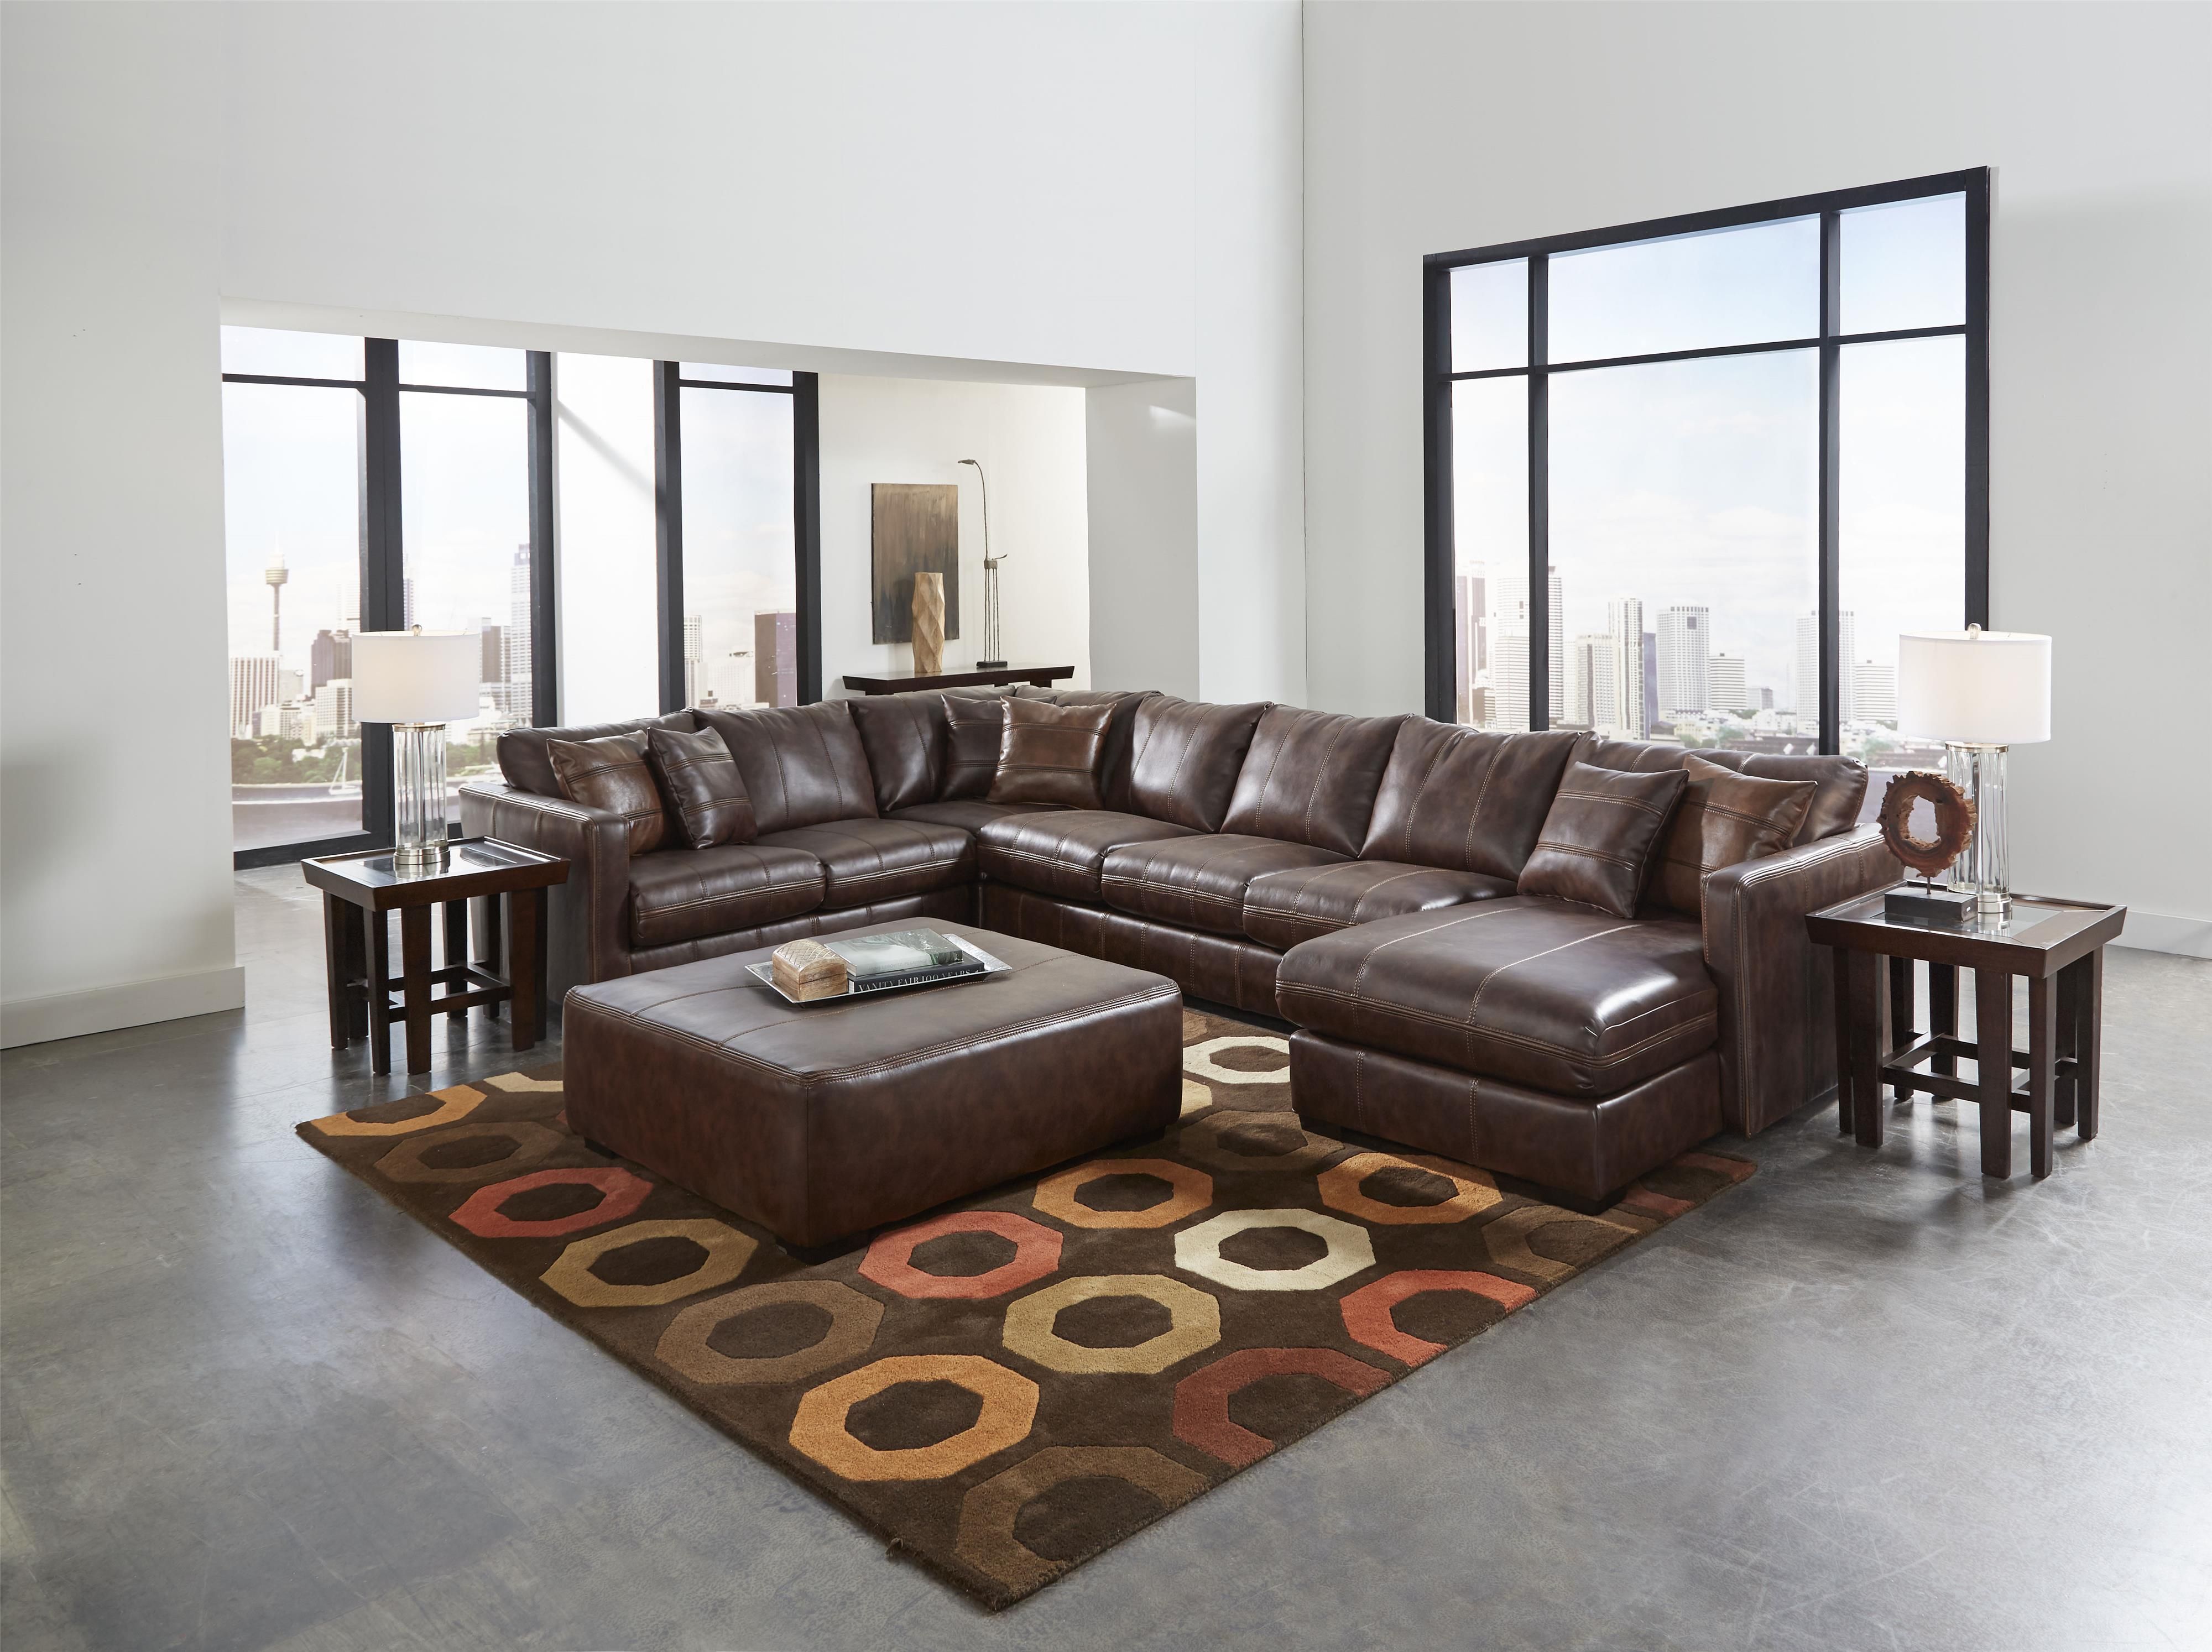 Jackson Furniture Tucker Sectional Sofa With Six Seats One Is A